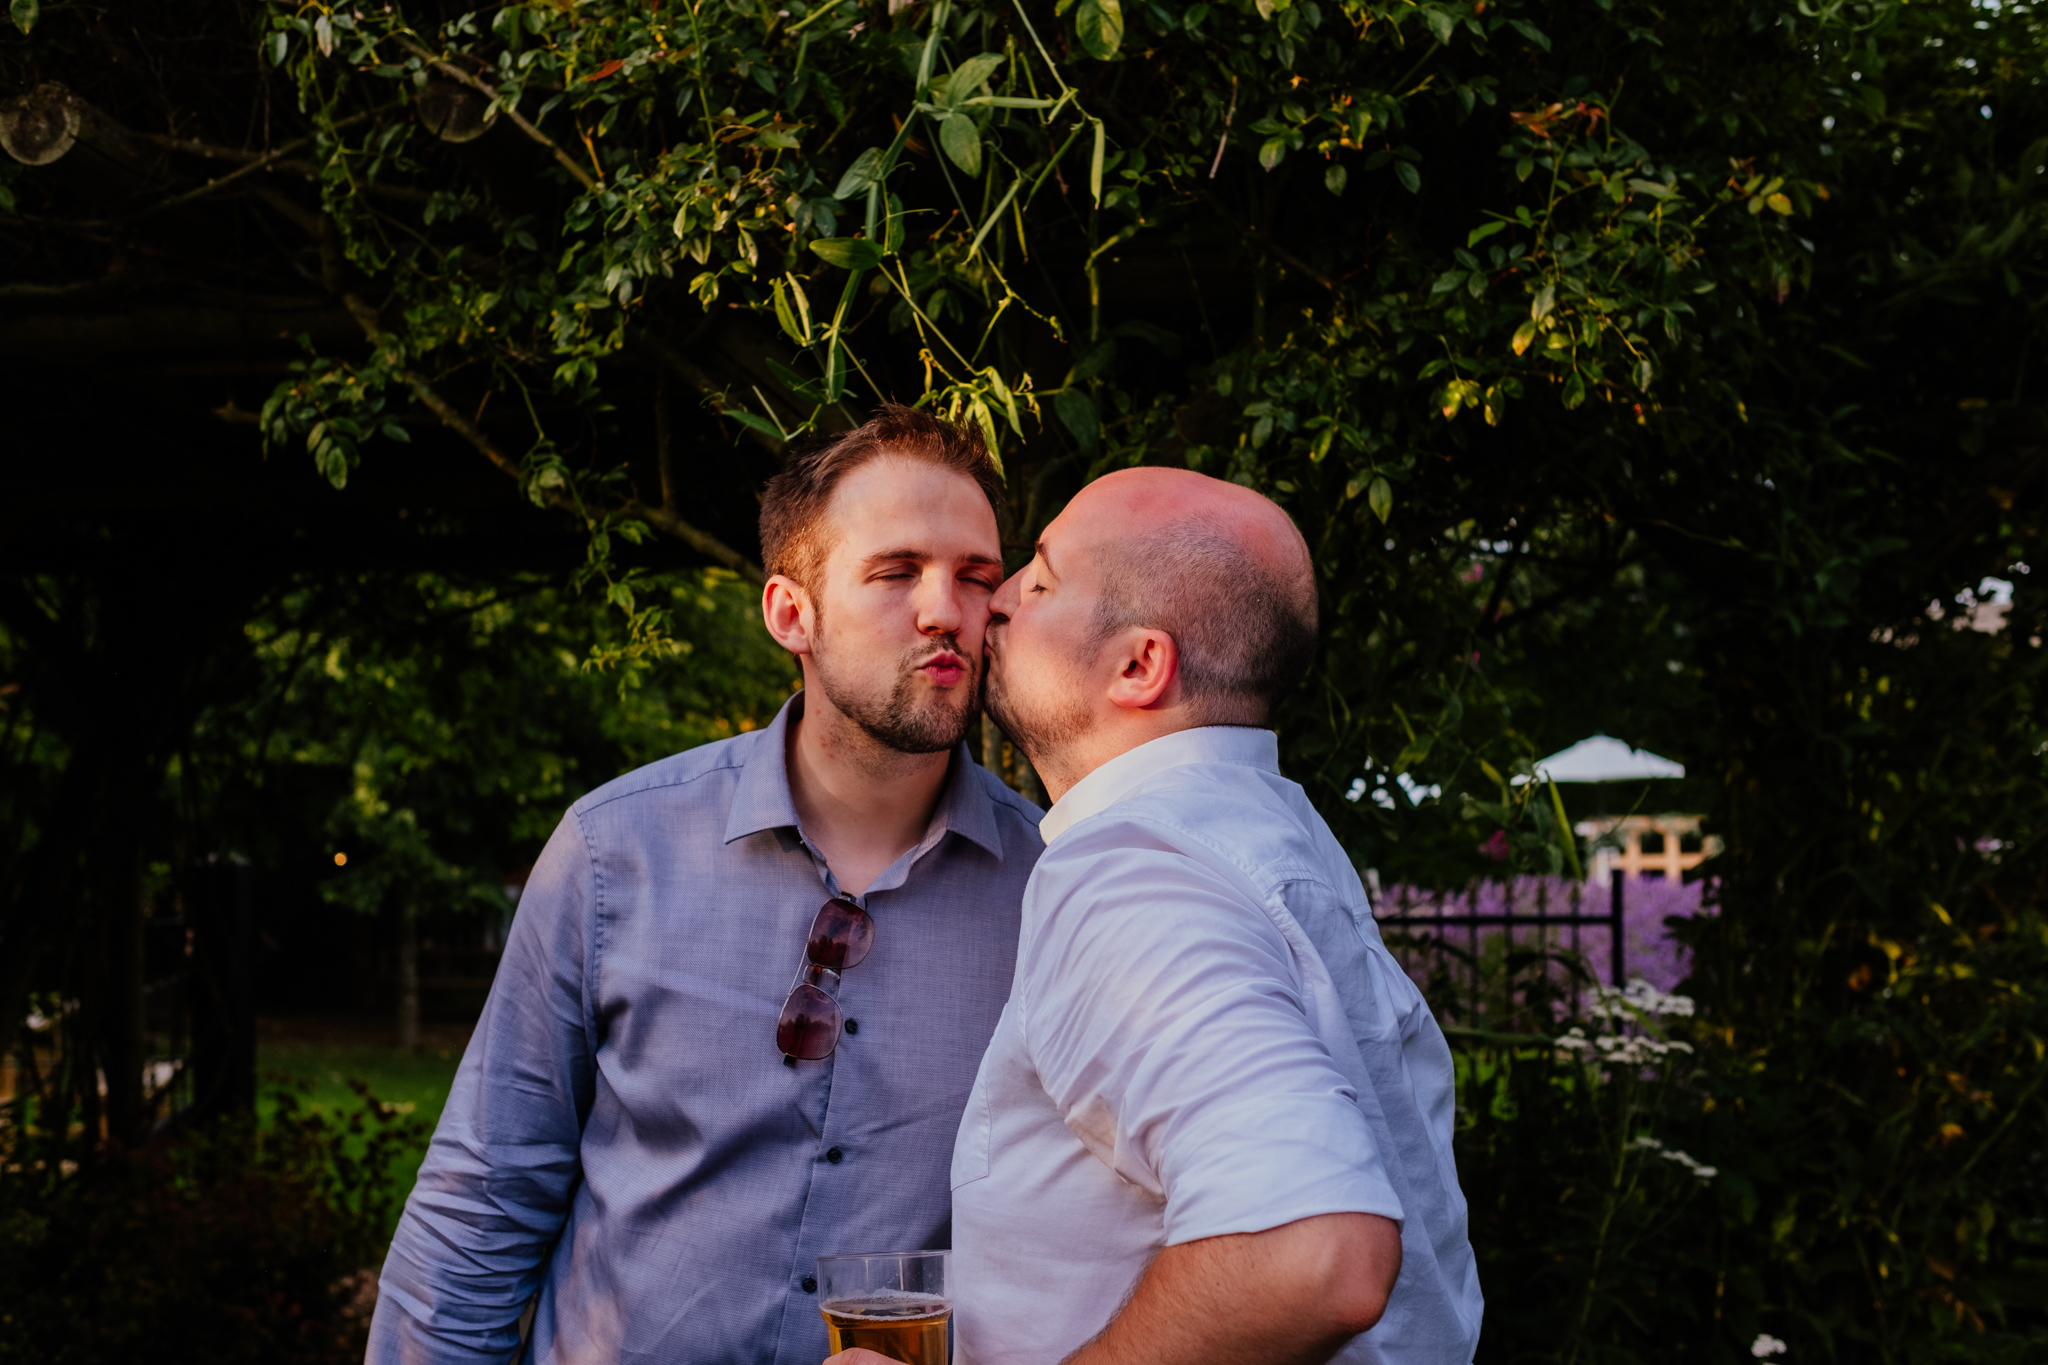 Groom kissing friend on the cheek